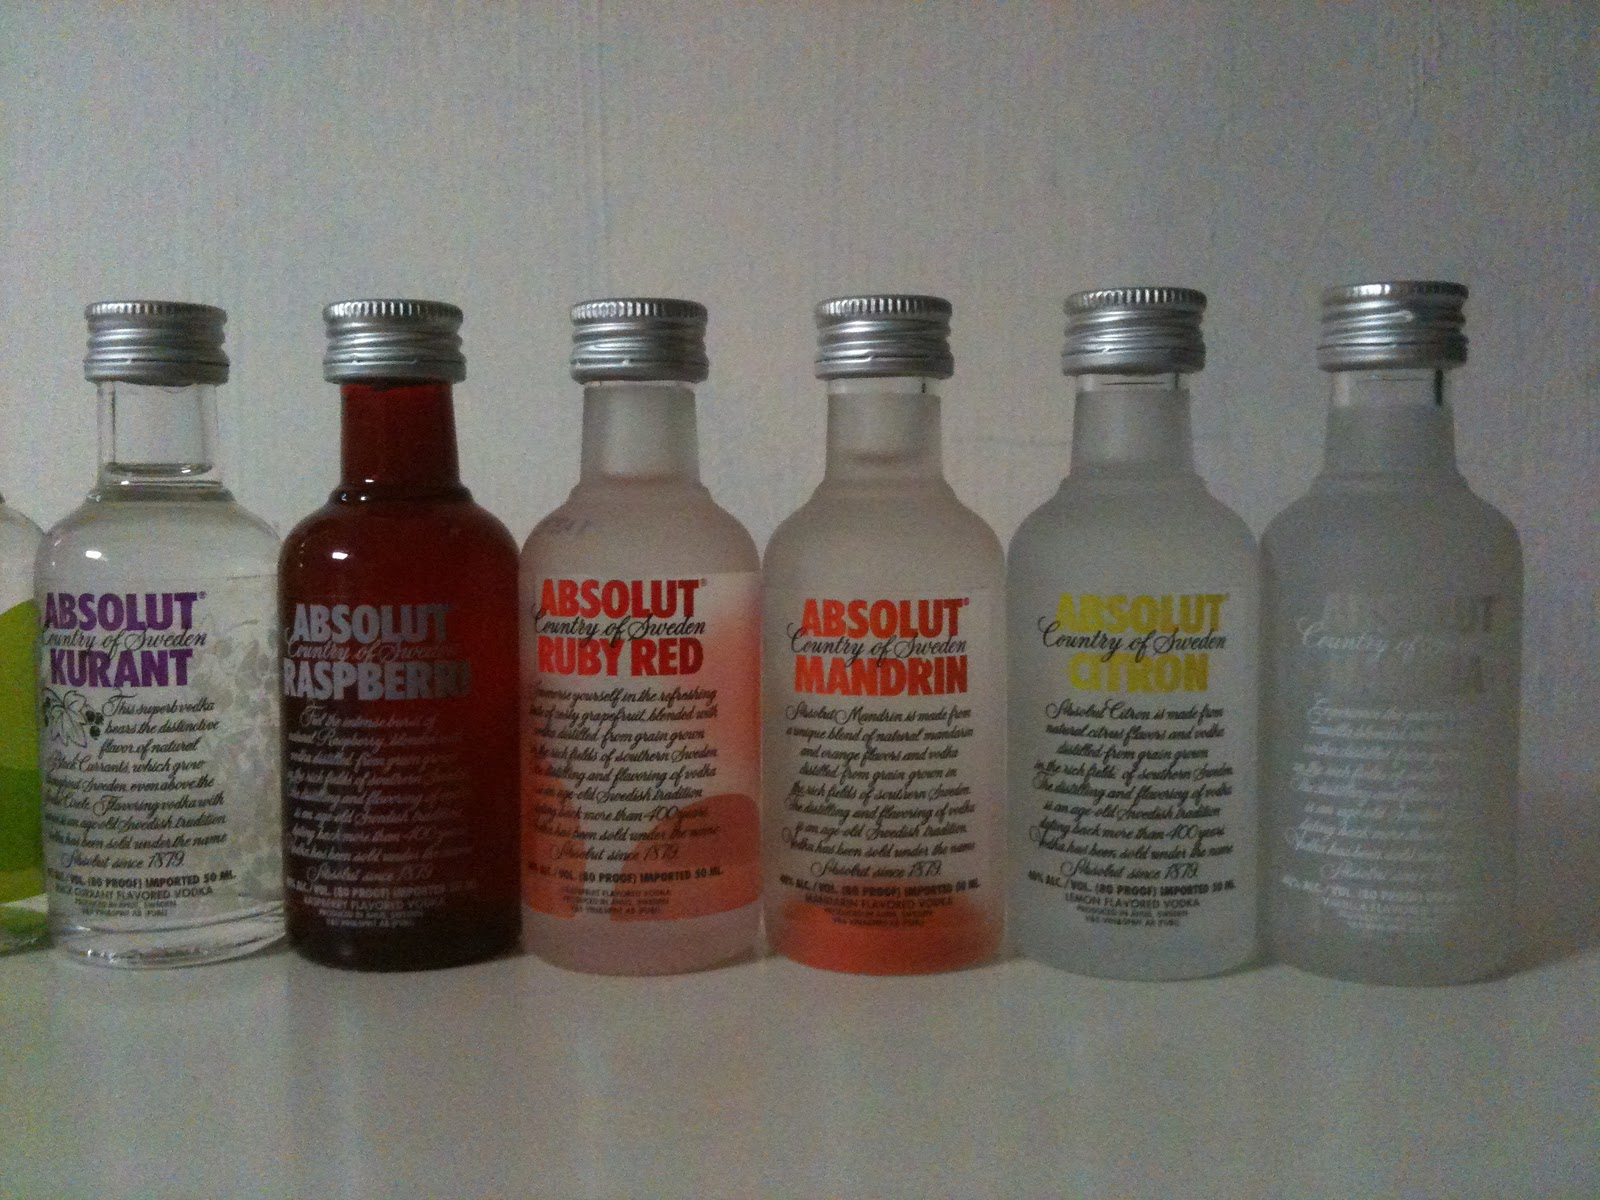 Absolut Vodka 50ml Miniature